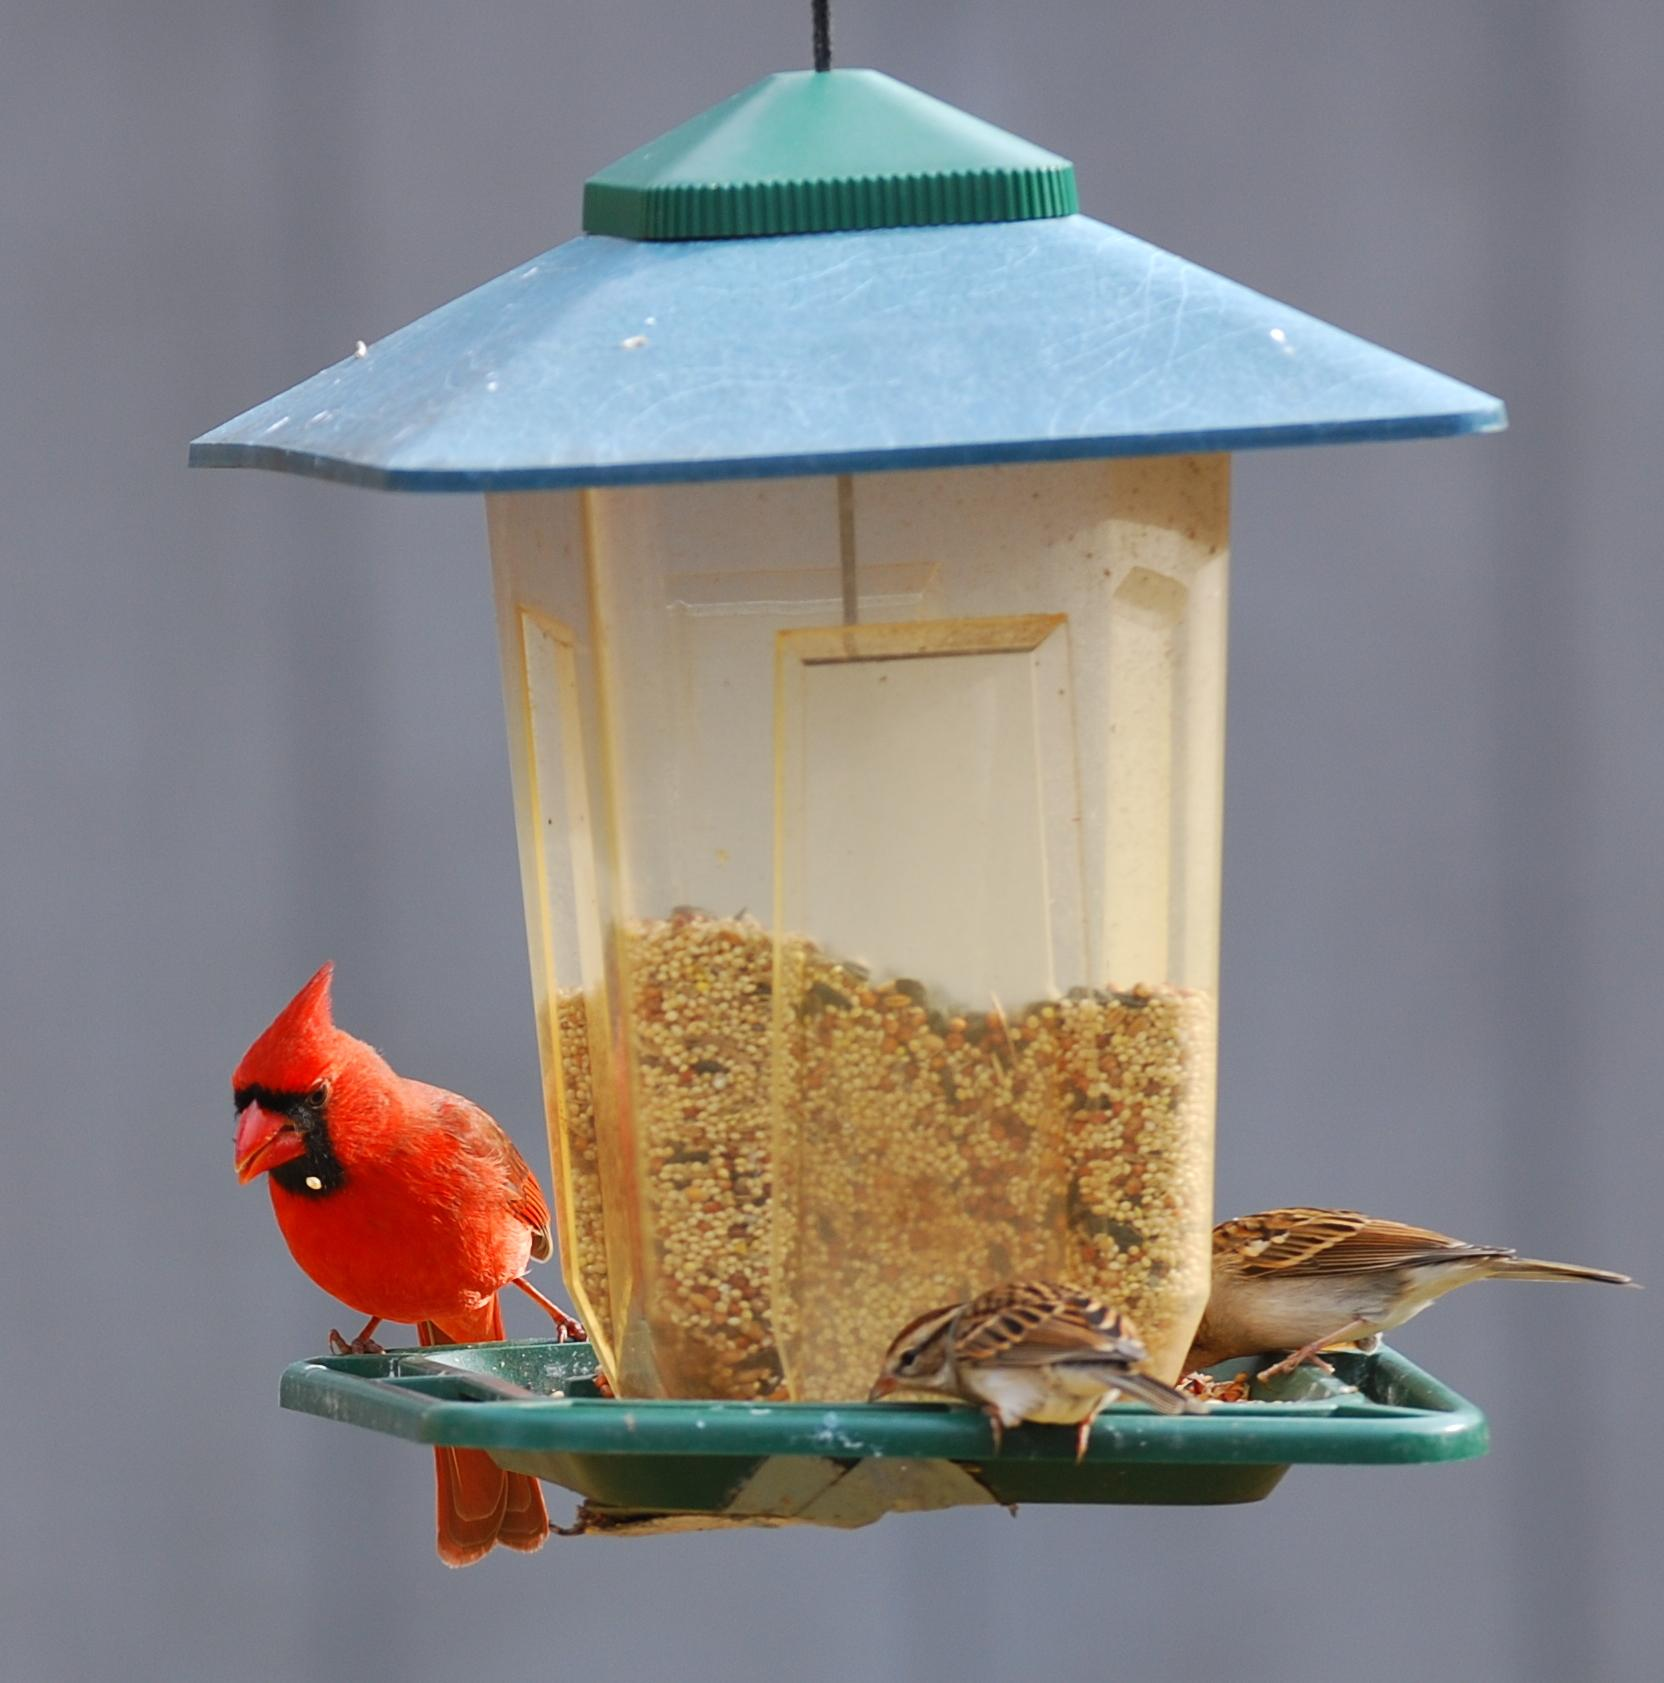 Cardinals and chipping sparrows at feeder.